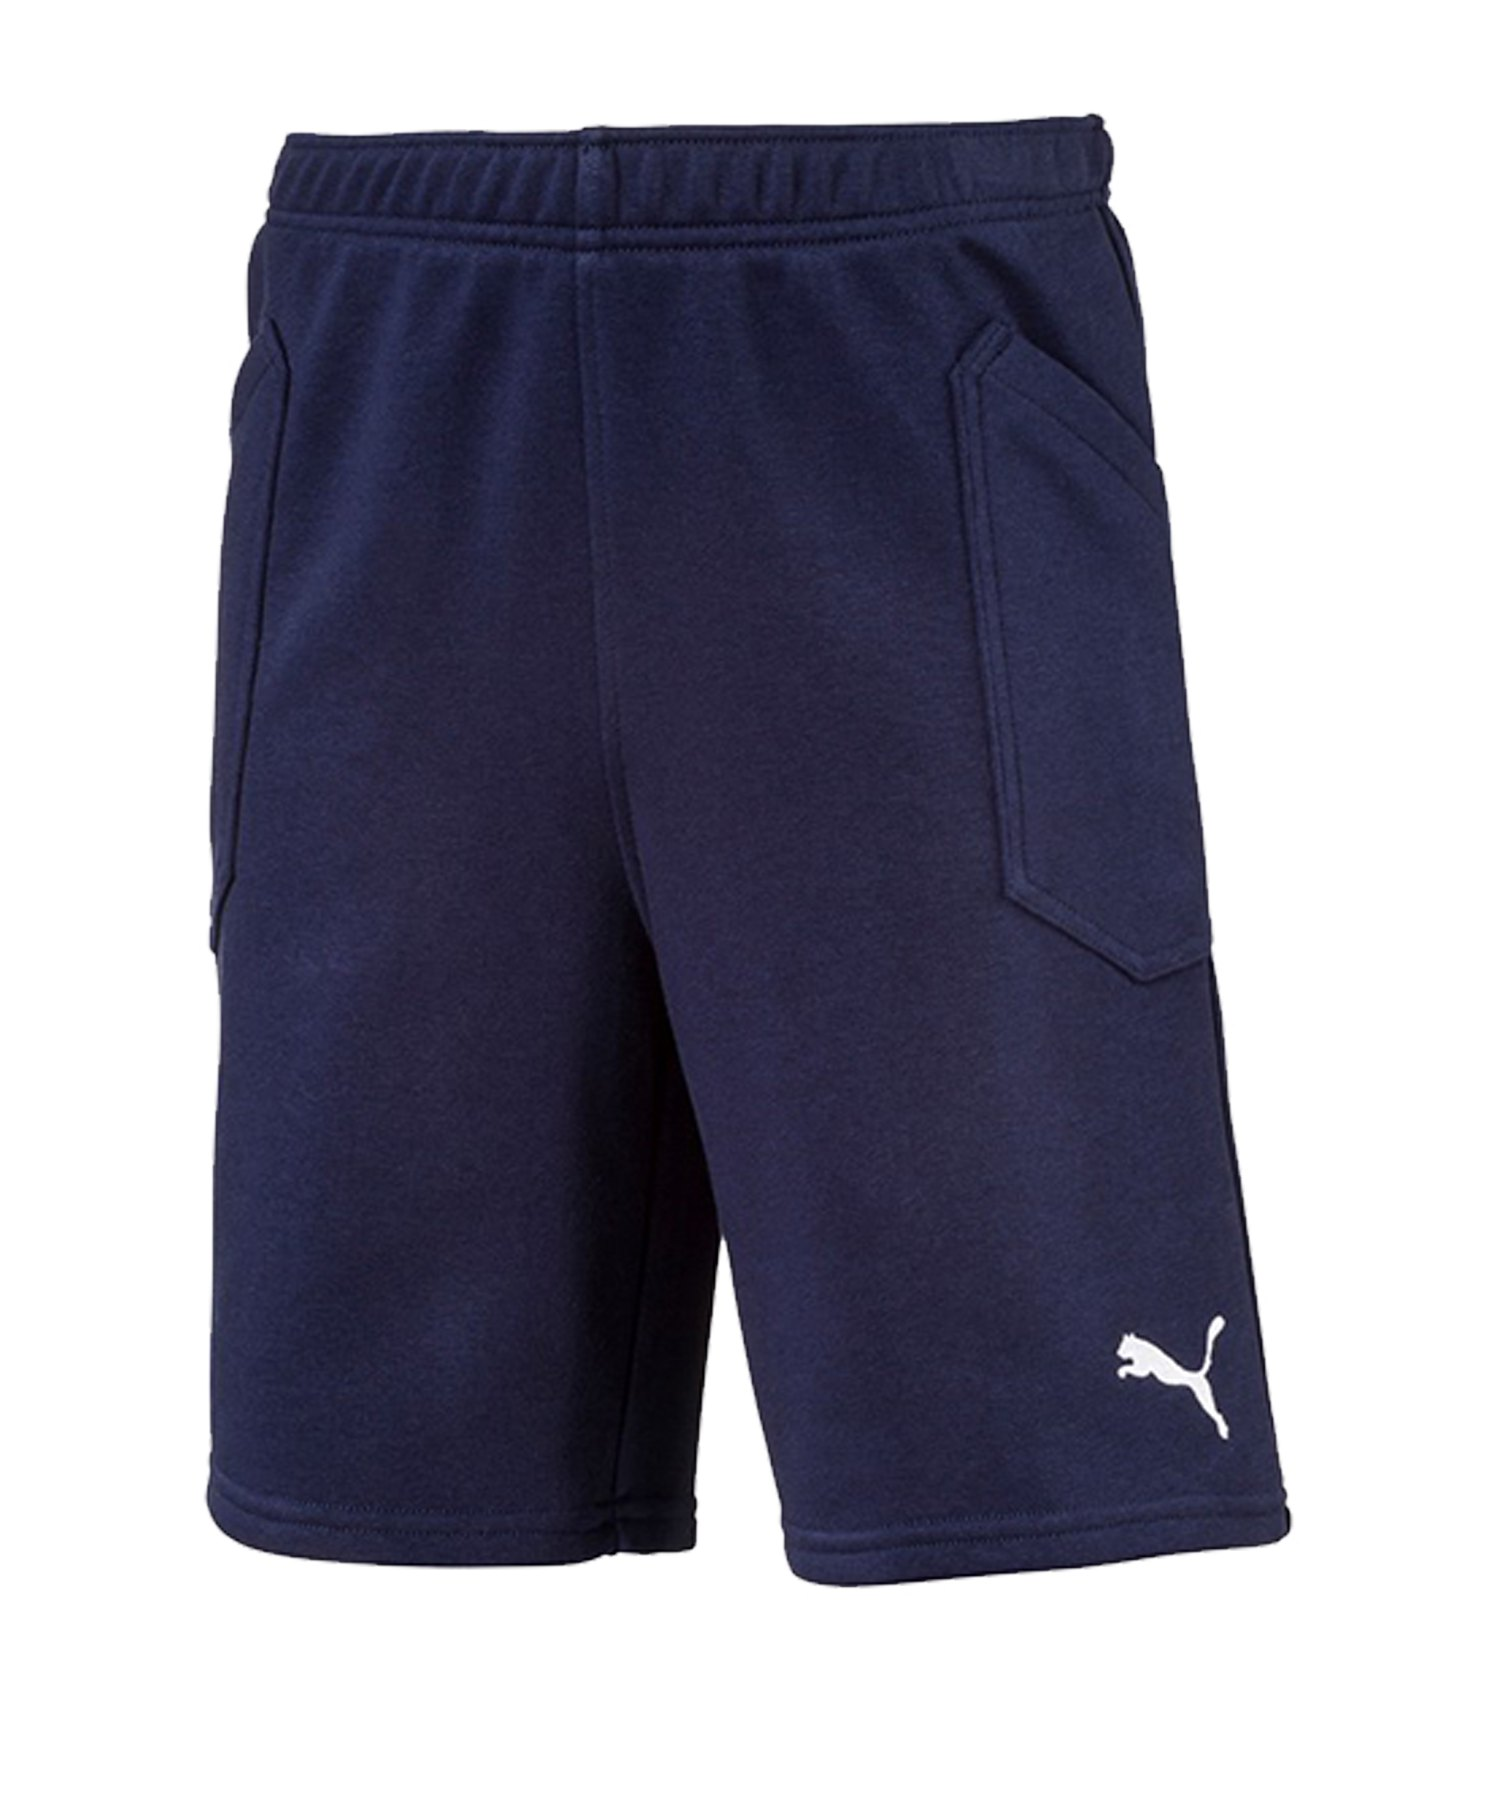 PUMA LIGA Casuals Short Kids Blau Weiss F06 - blau